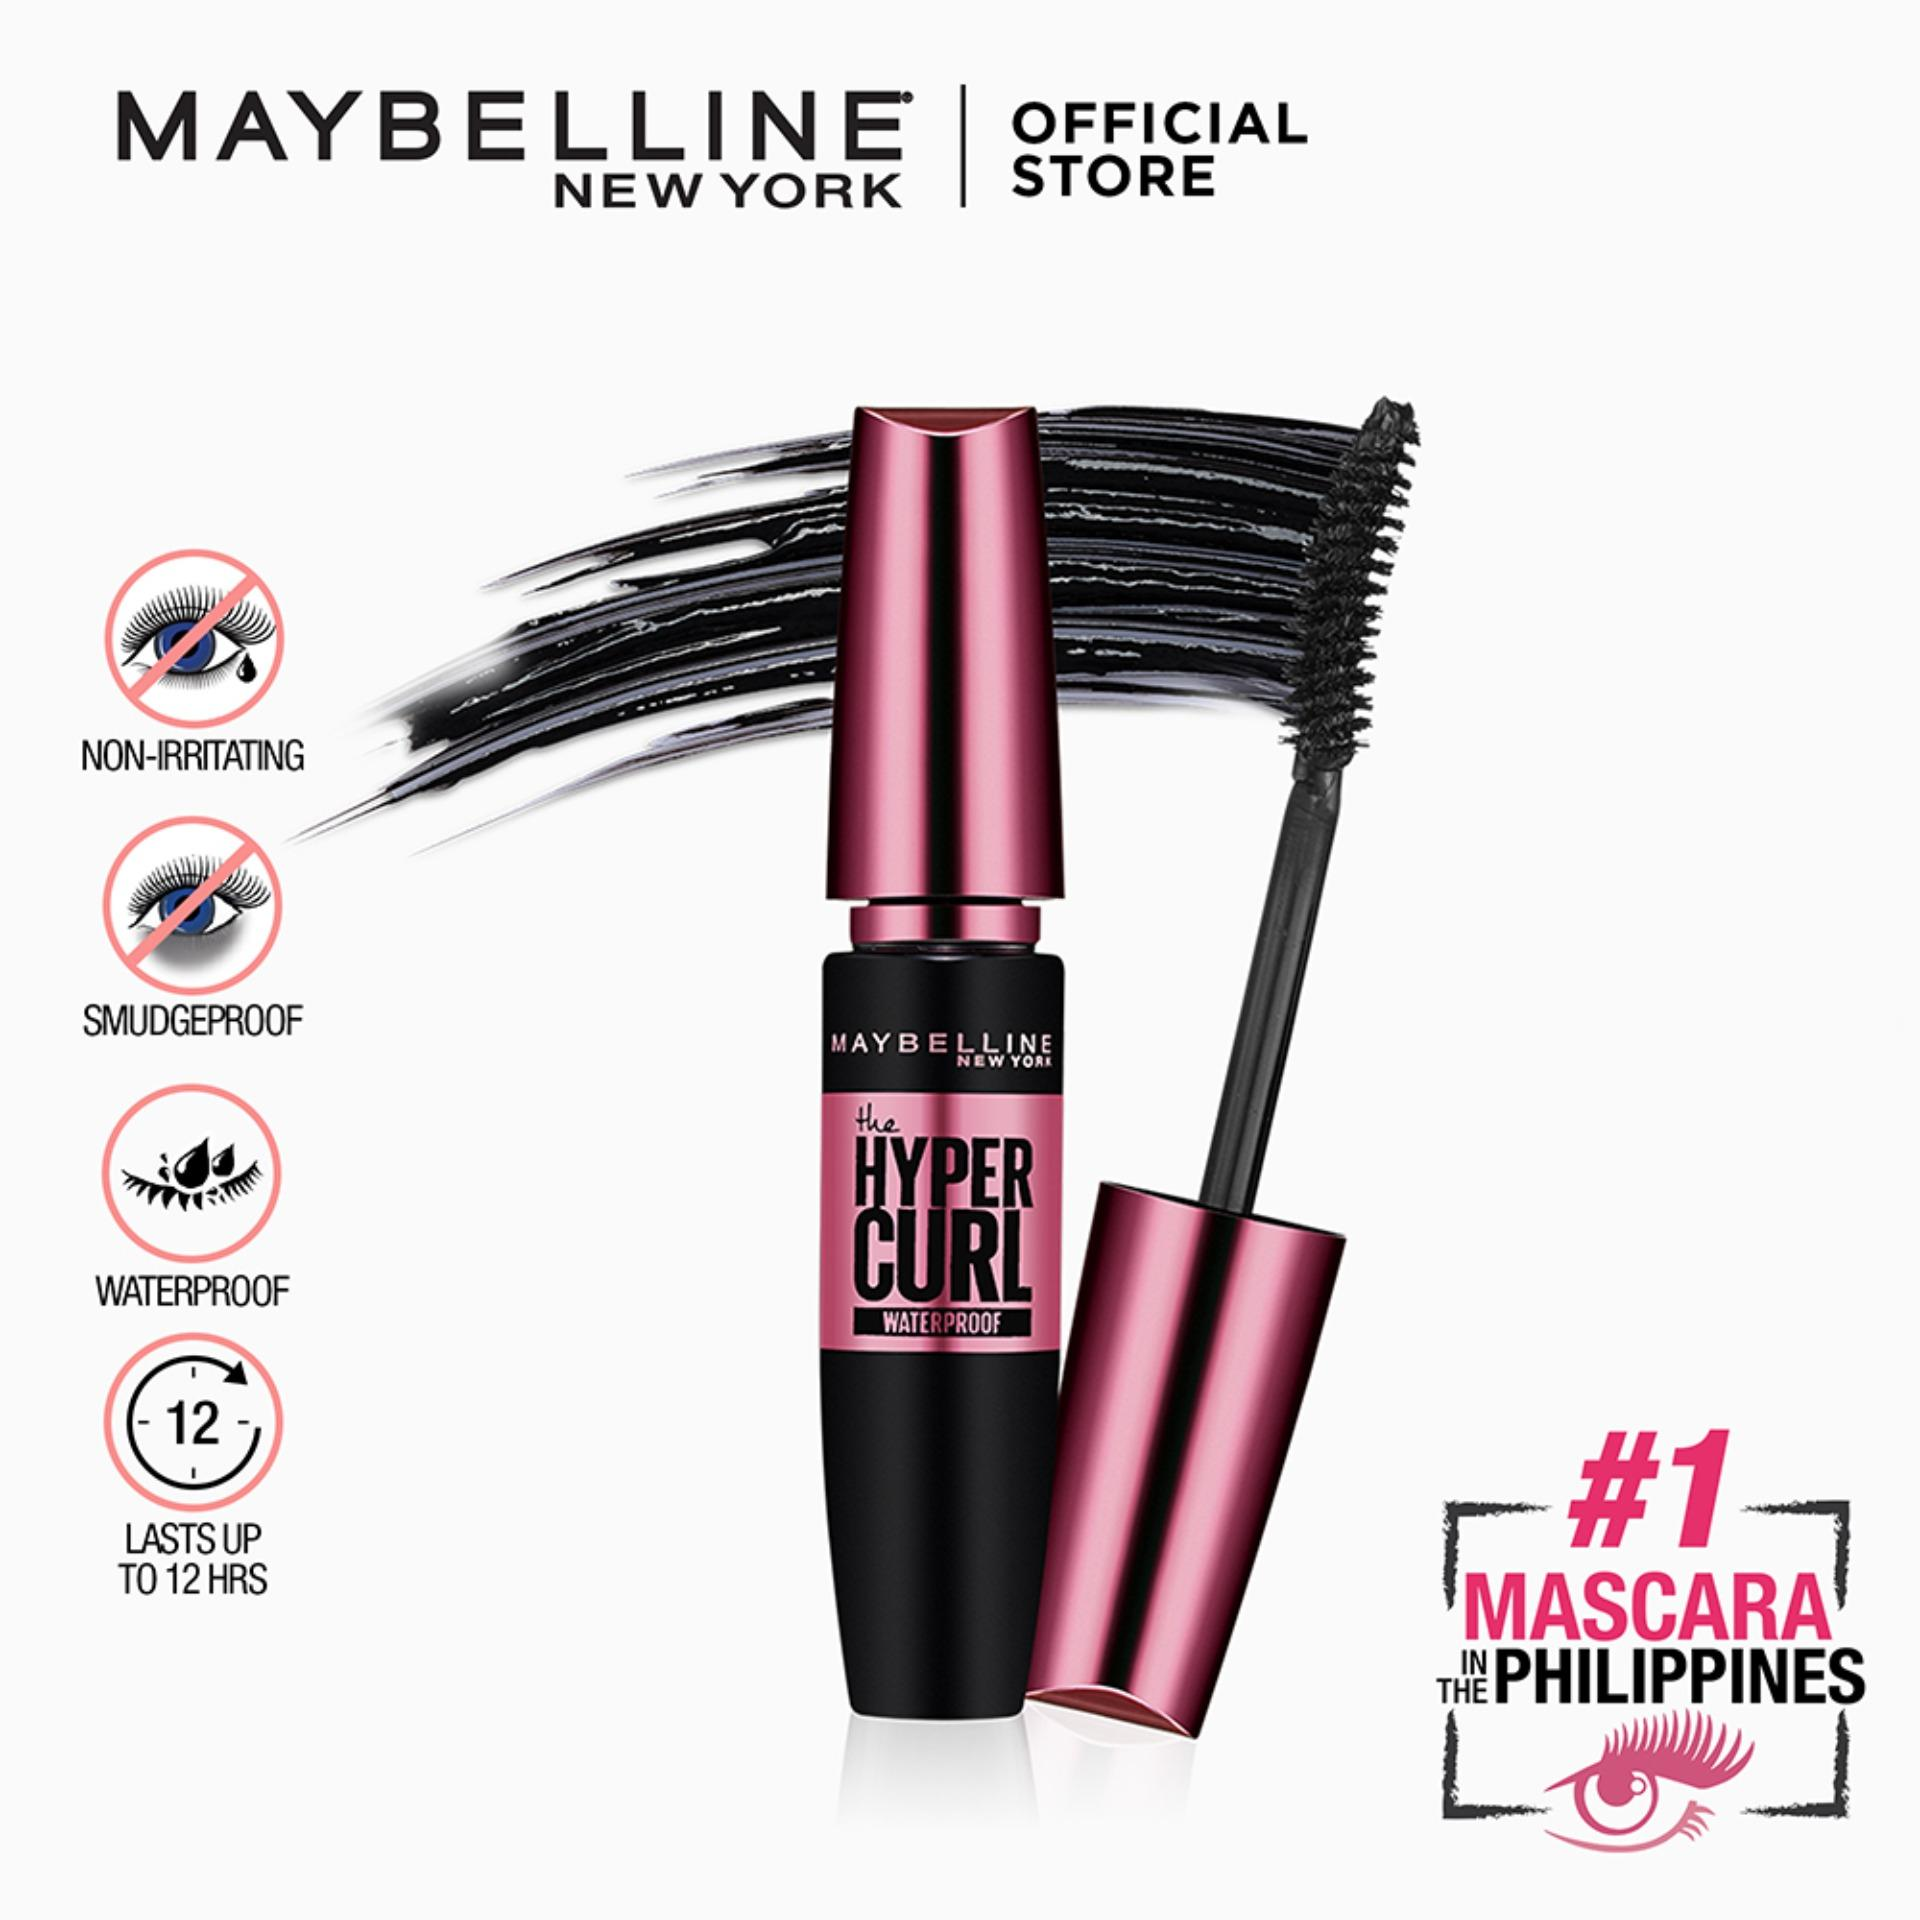 46ca22956fe Maybelline Philippines - Maybelline Mascara for sale - prices ...